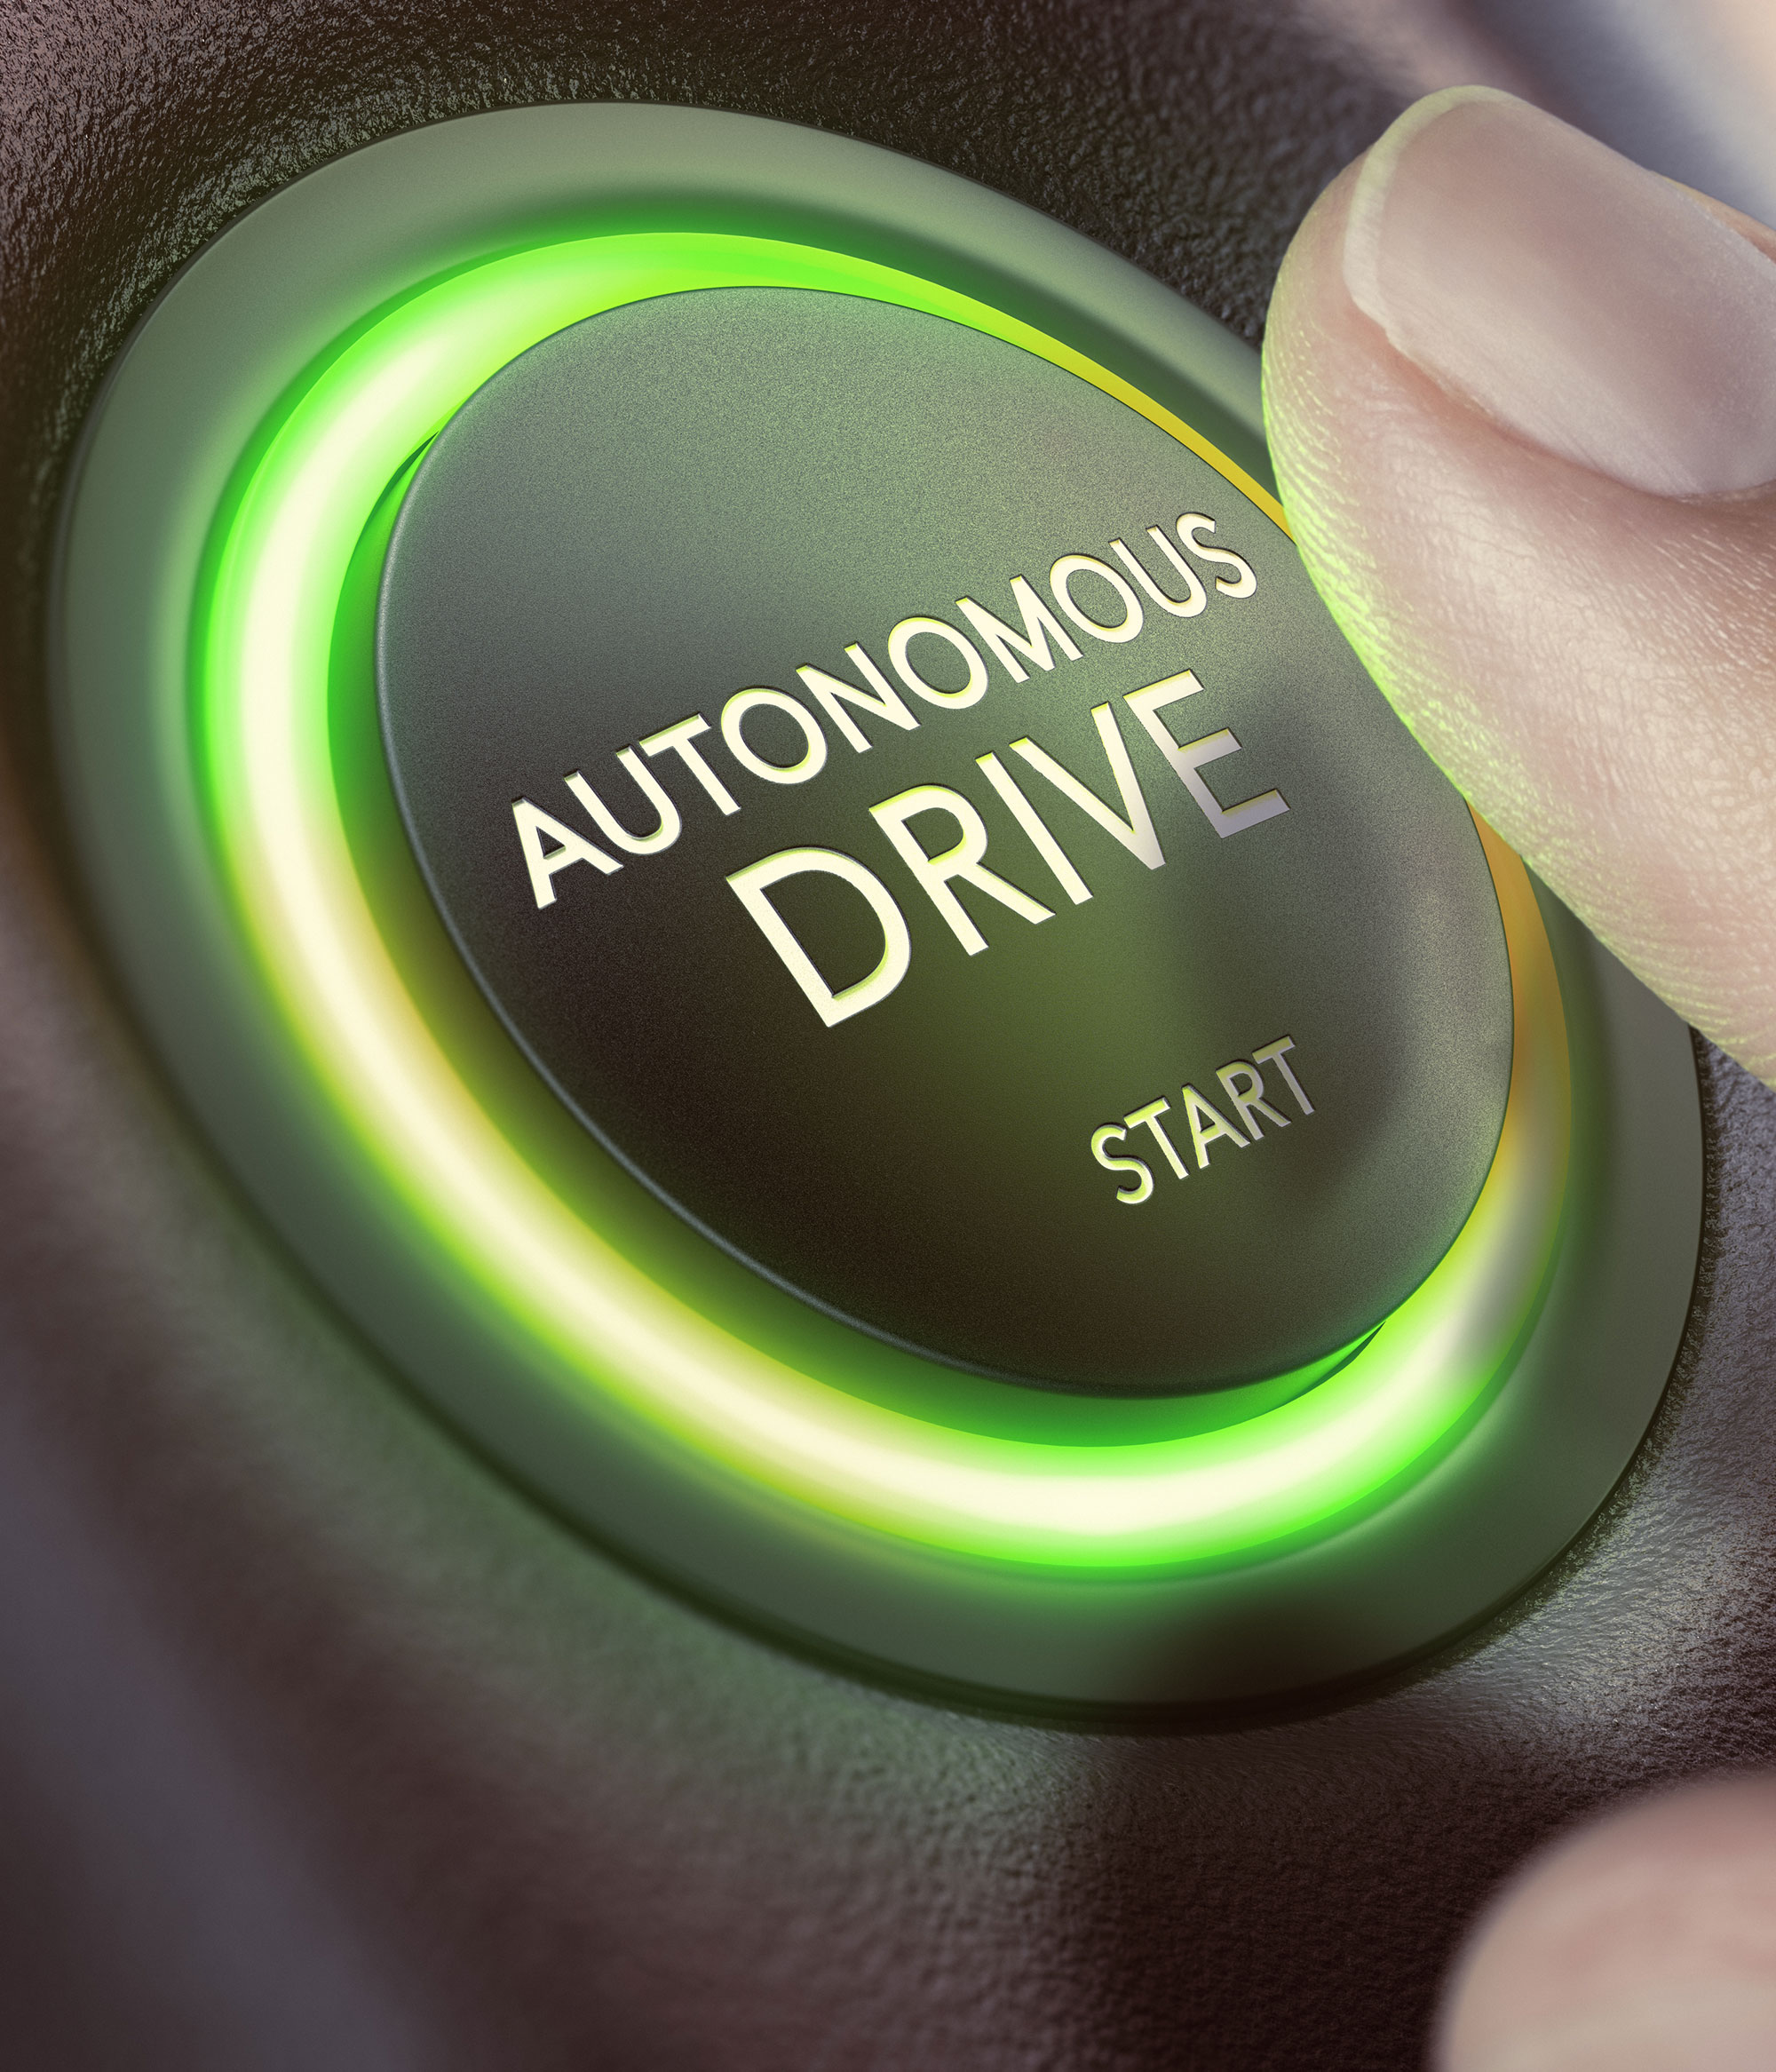 Finger pressing a push button to start a self-driving car.